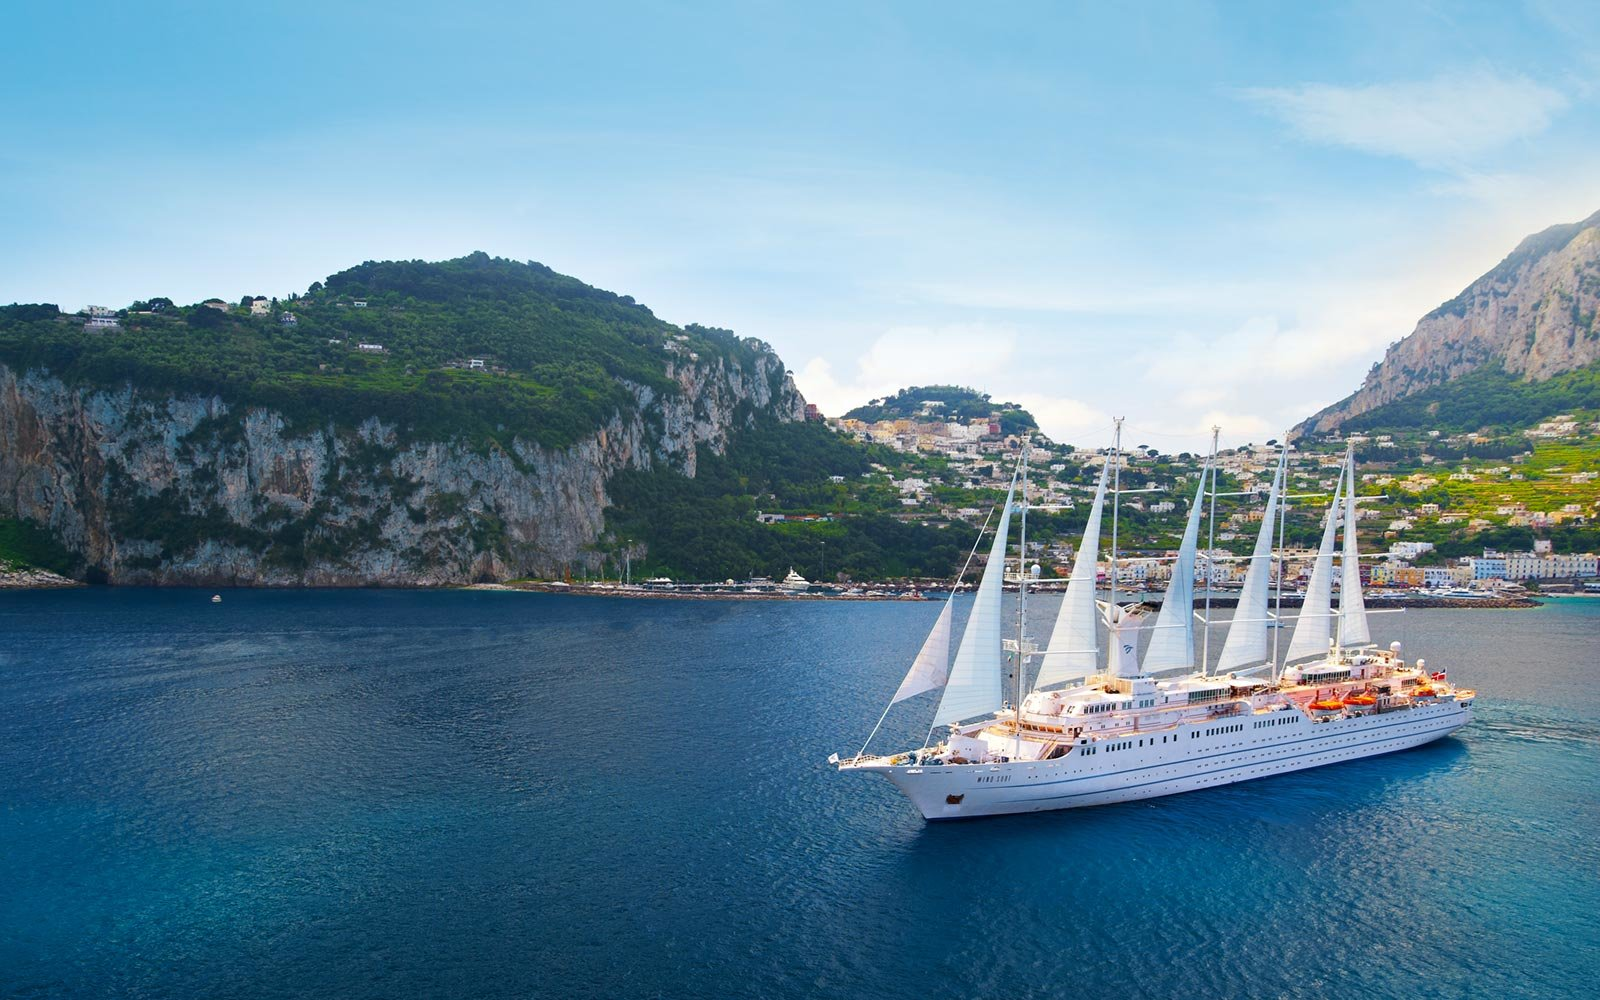 Wind Surf, Windstar Cruises